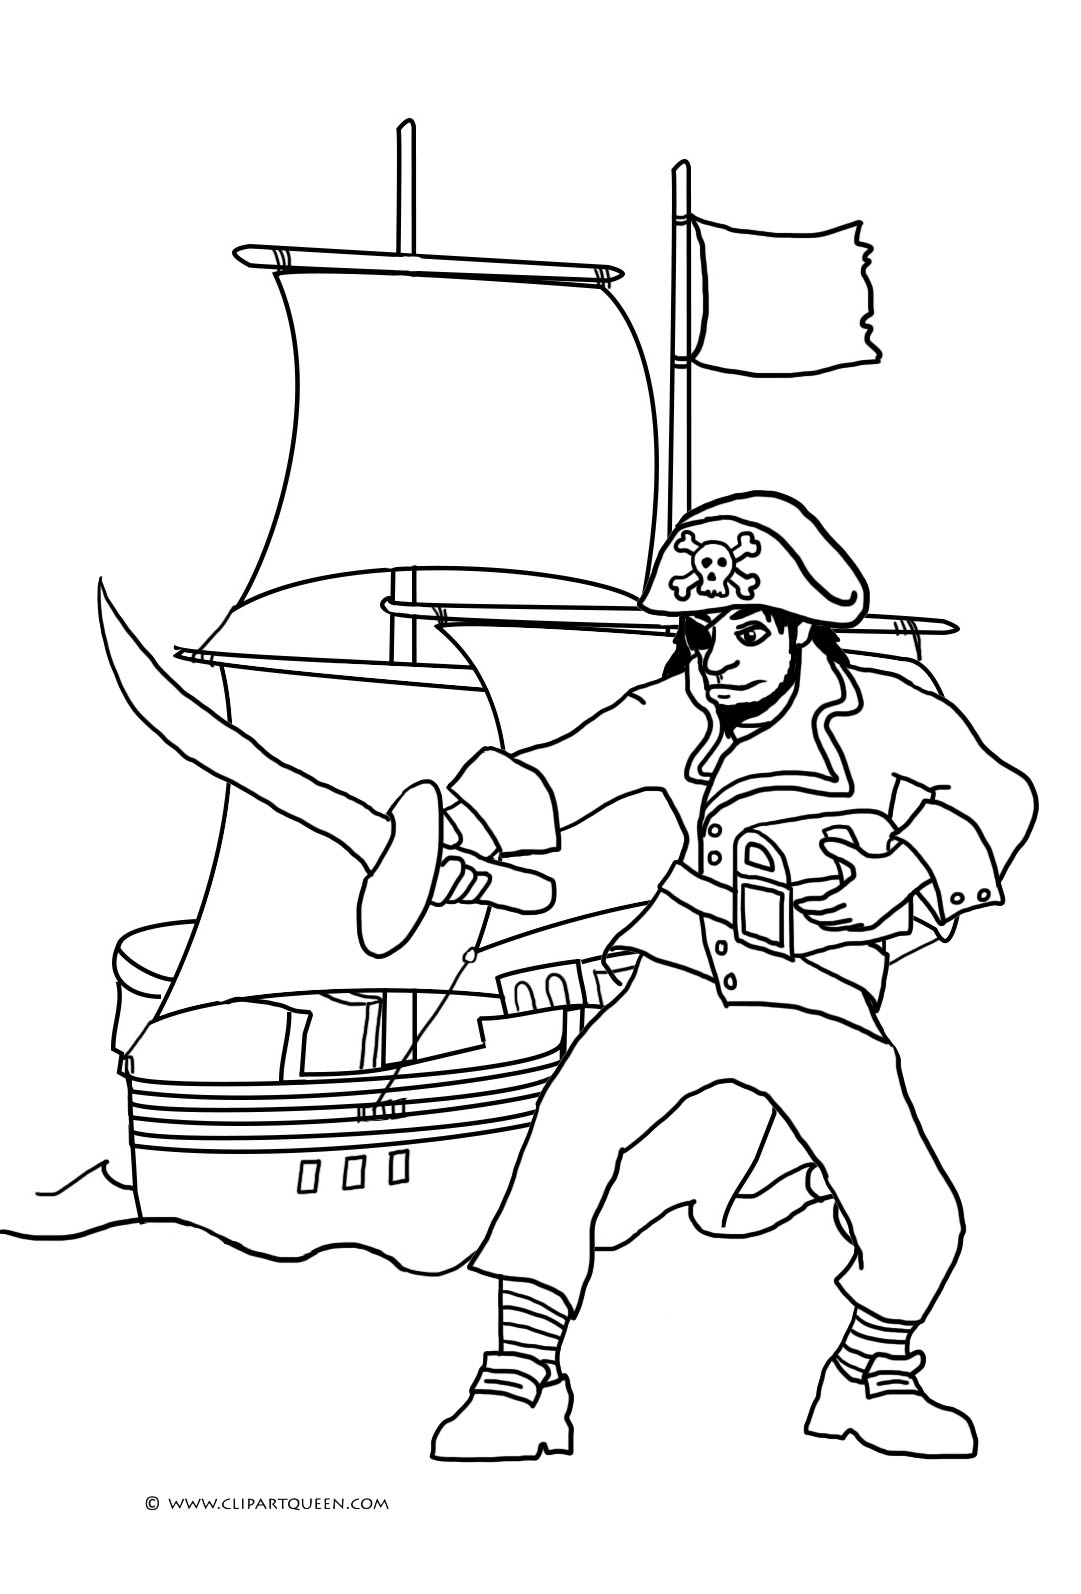 pirate images to colour pirate color pages activity shelter to colour images pirate